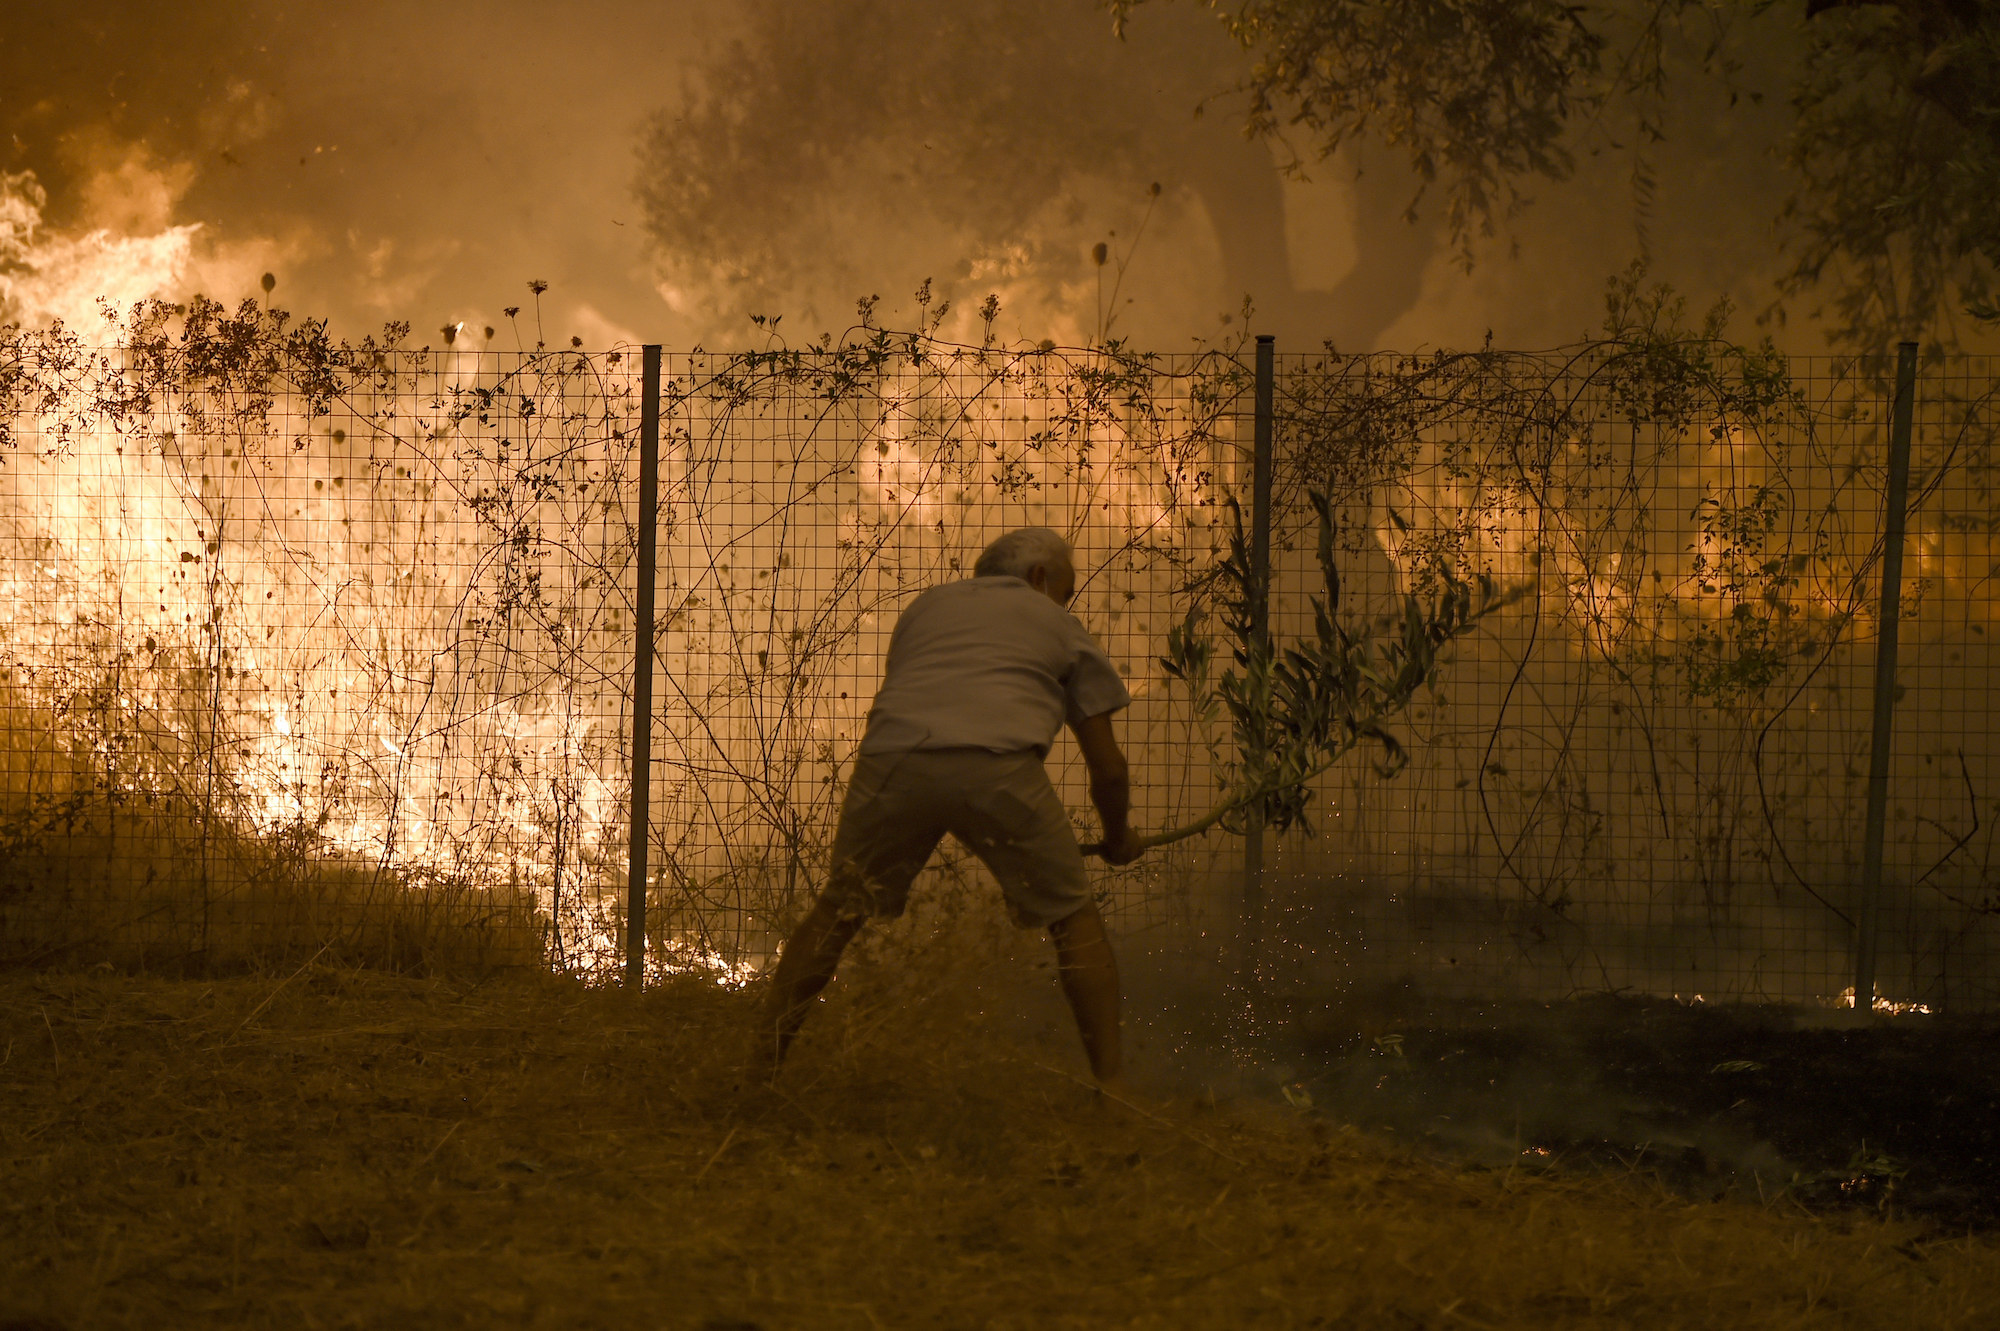 A man standing by burning weeds swings a leafy branch at the ground